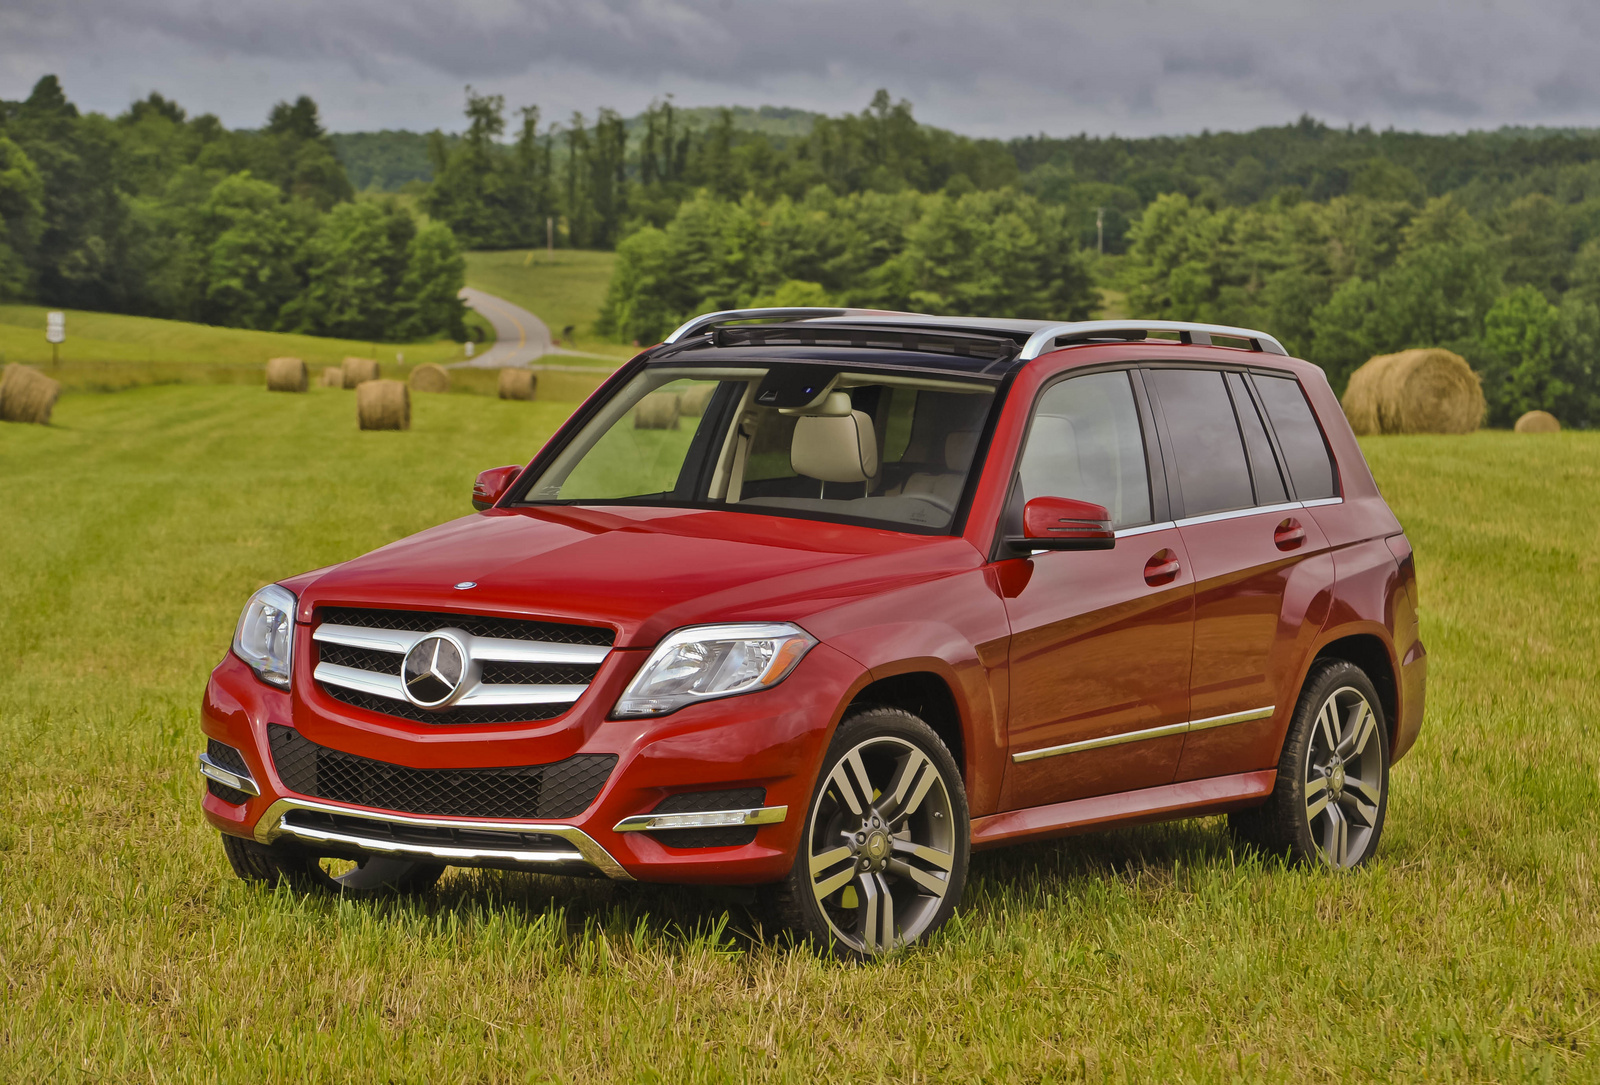 2013 mercedes benz glk class overview cargurus for 2012 mercedes benz glk class